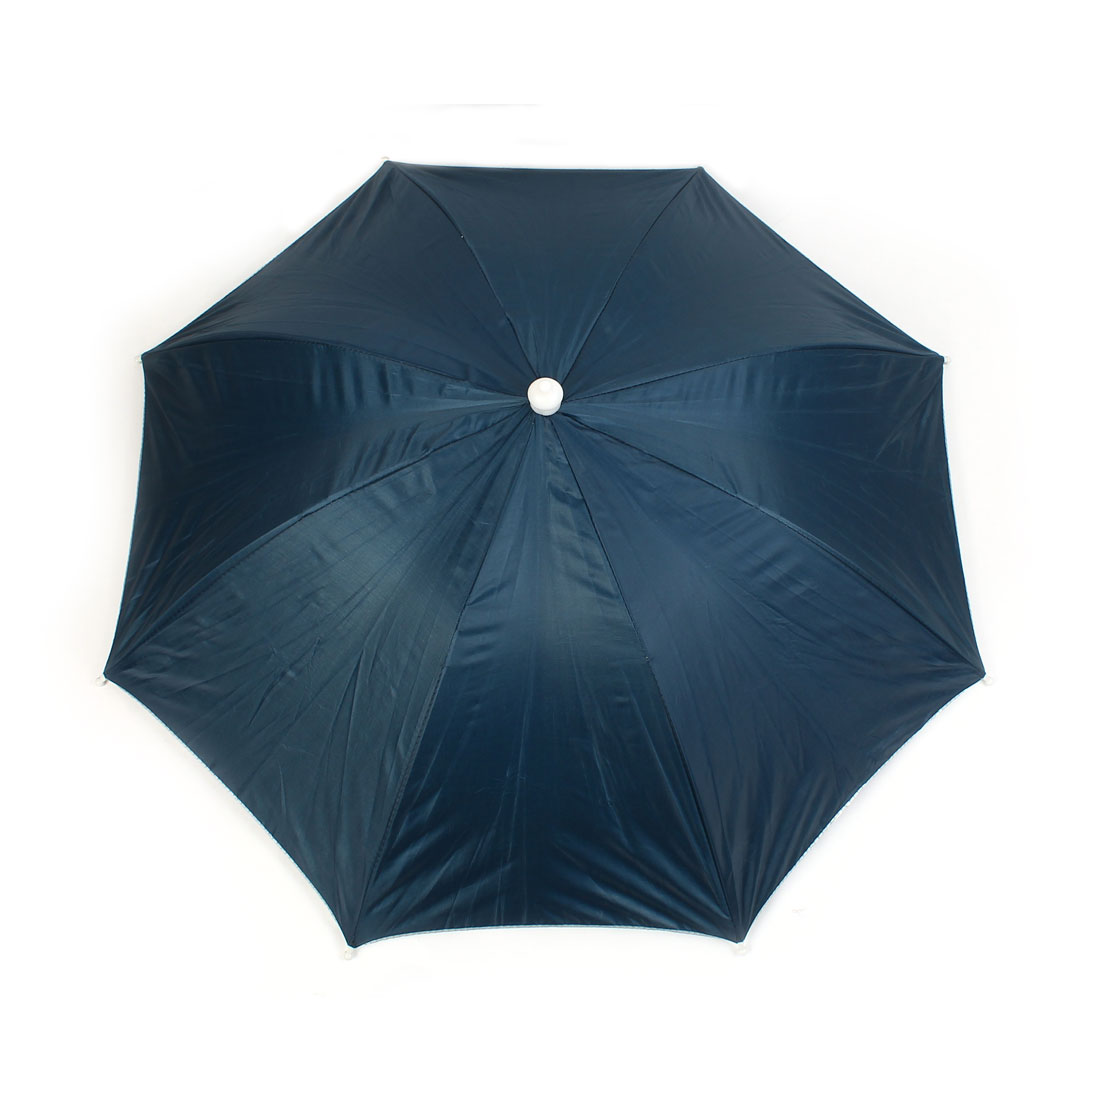 Portable Fishing Headwear Polyester Canopy Snugly Umbrella Hat Cap Dark Blue